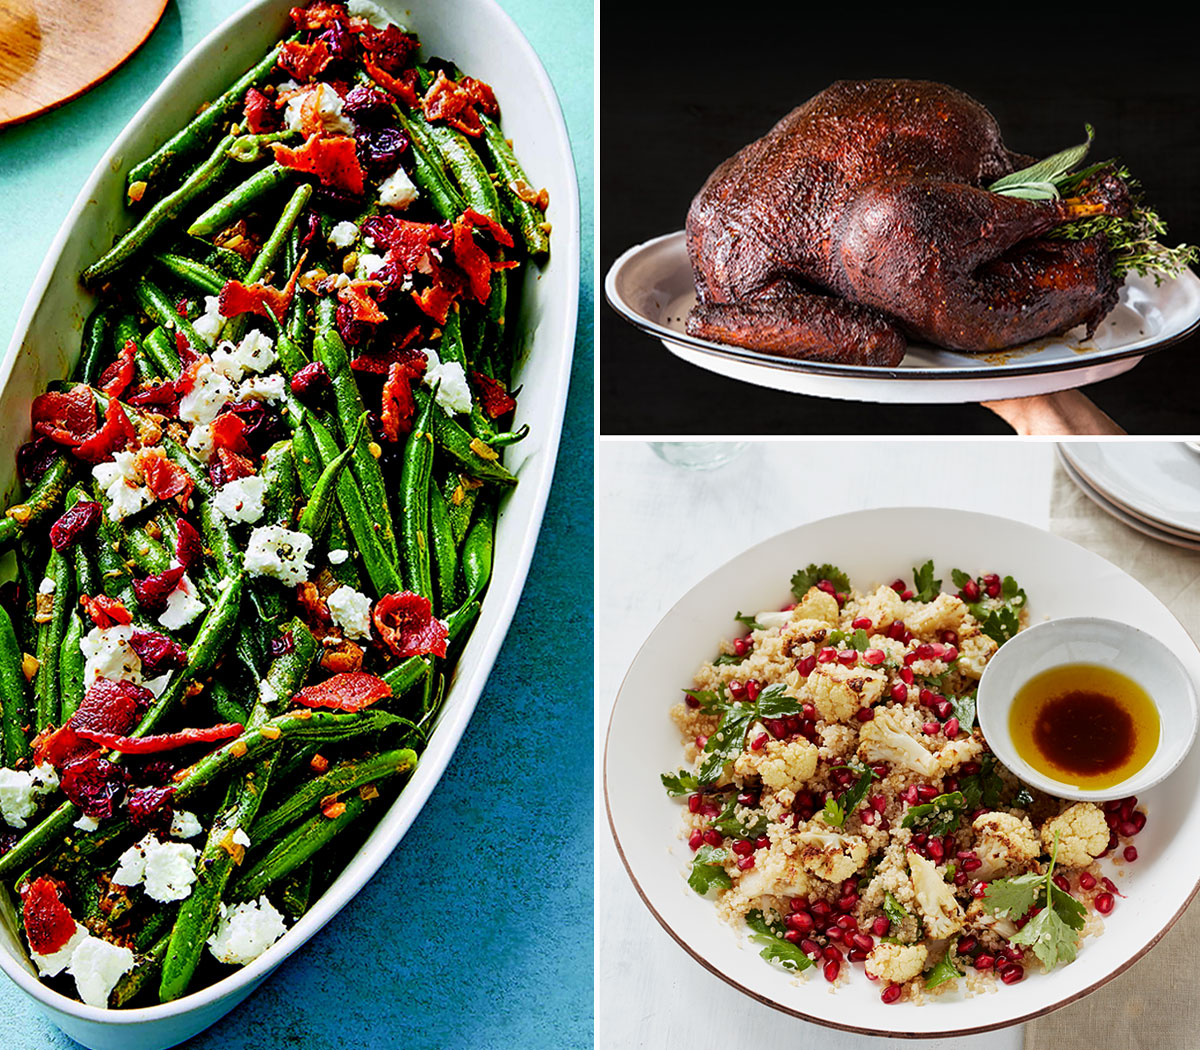 Thanksgiving Recipes From Stars and Celeb Chefs: Turkey, Mashed Potatoes and More